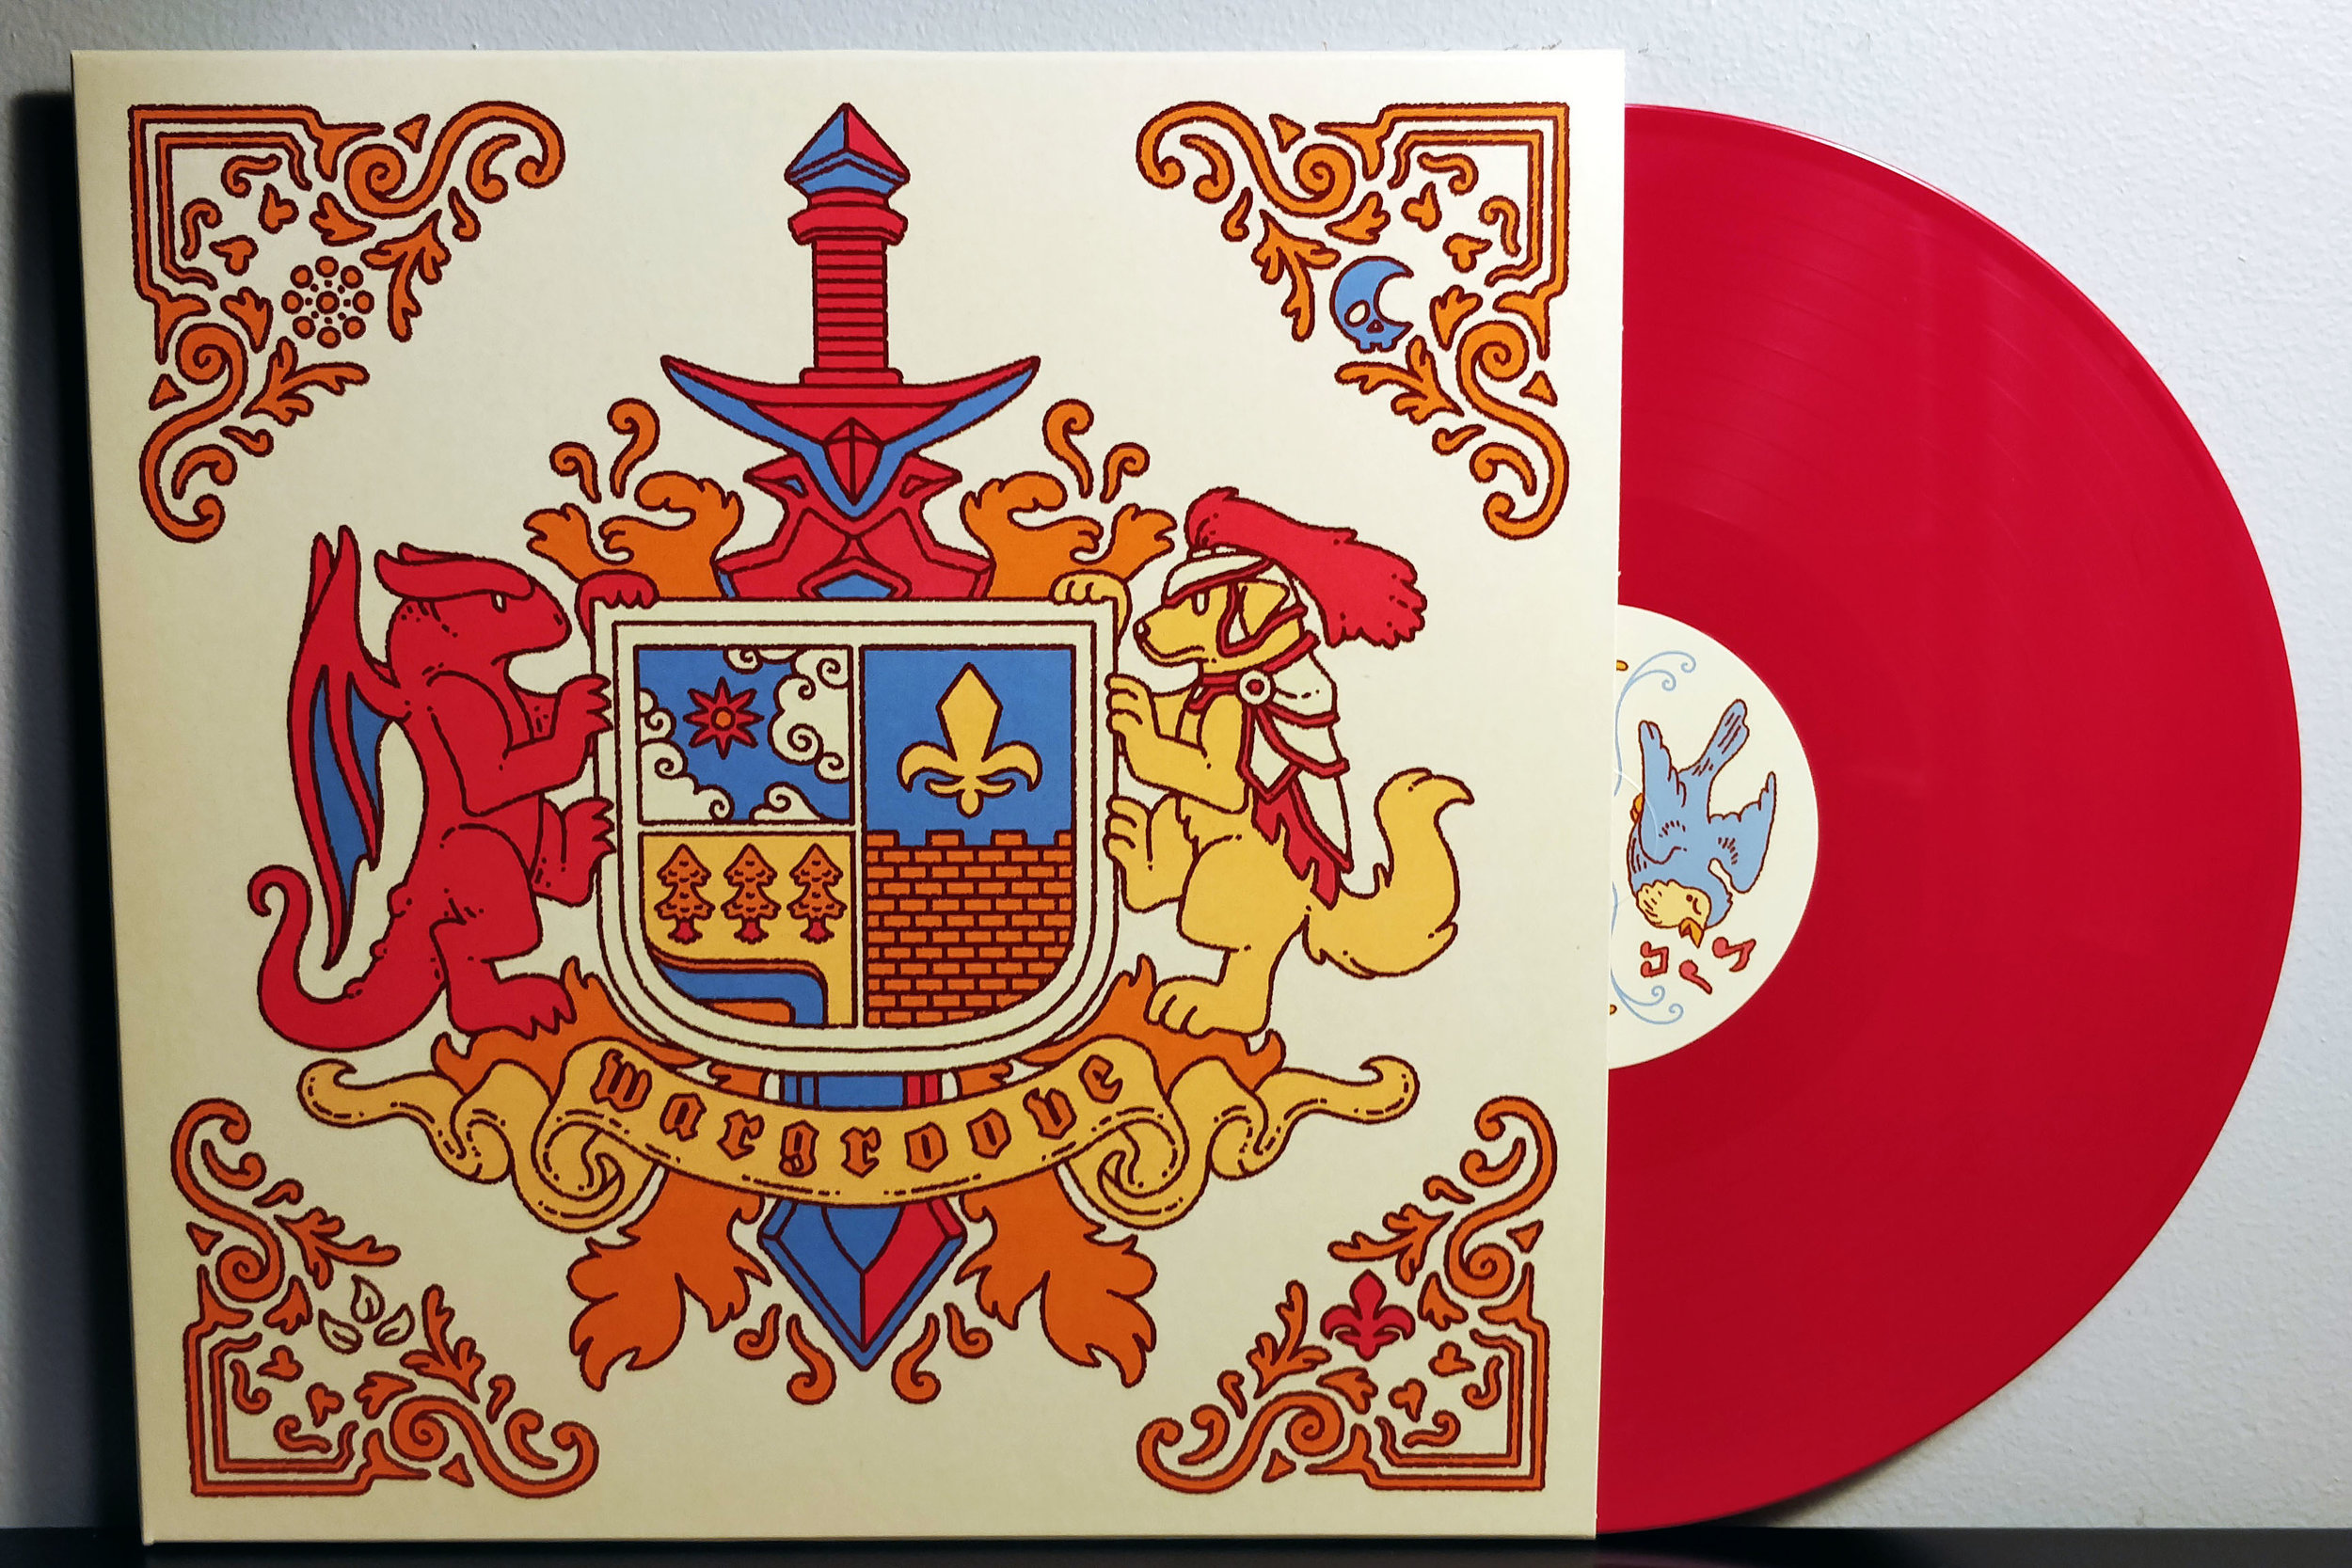 Wargroove by Phonetic Hero pressed on red vinyl by Yetee Records